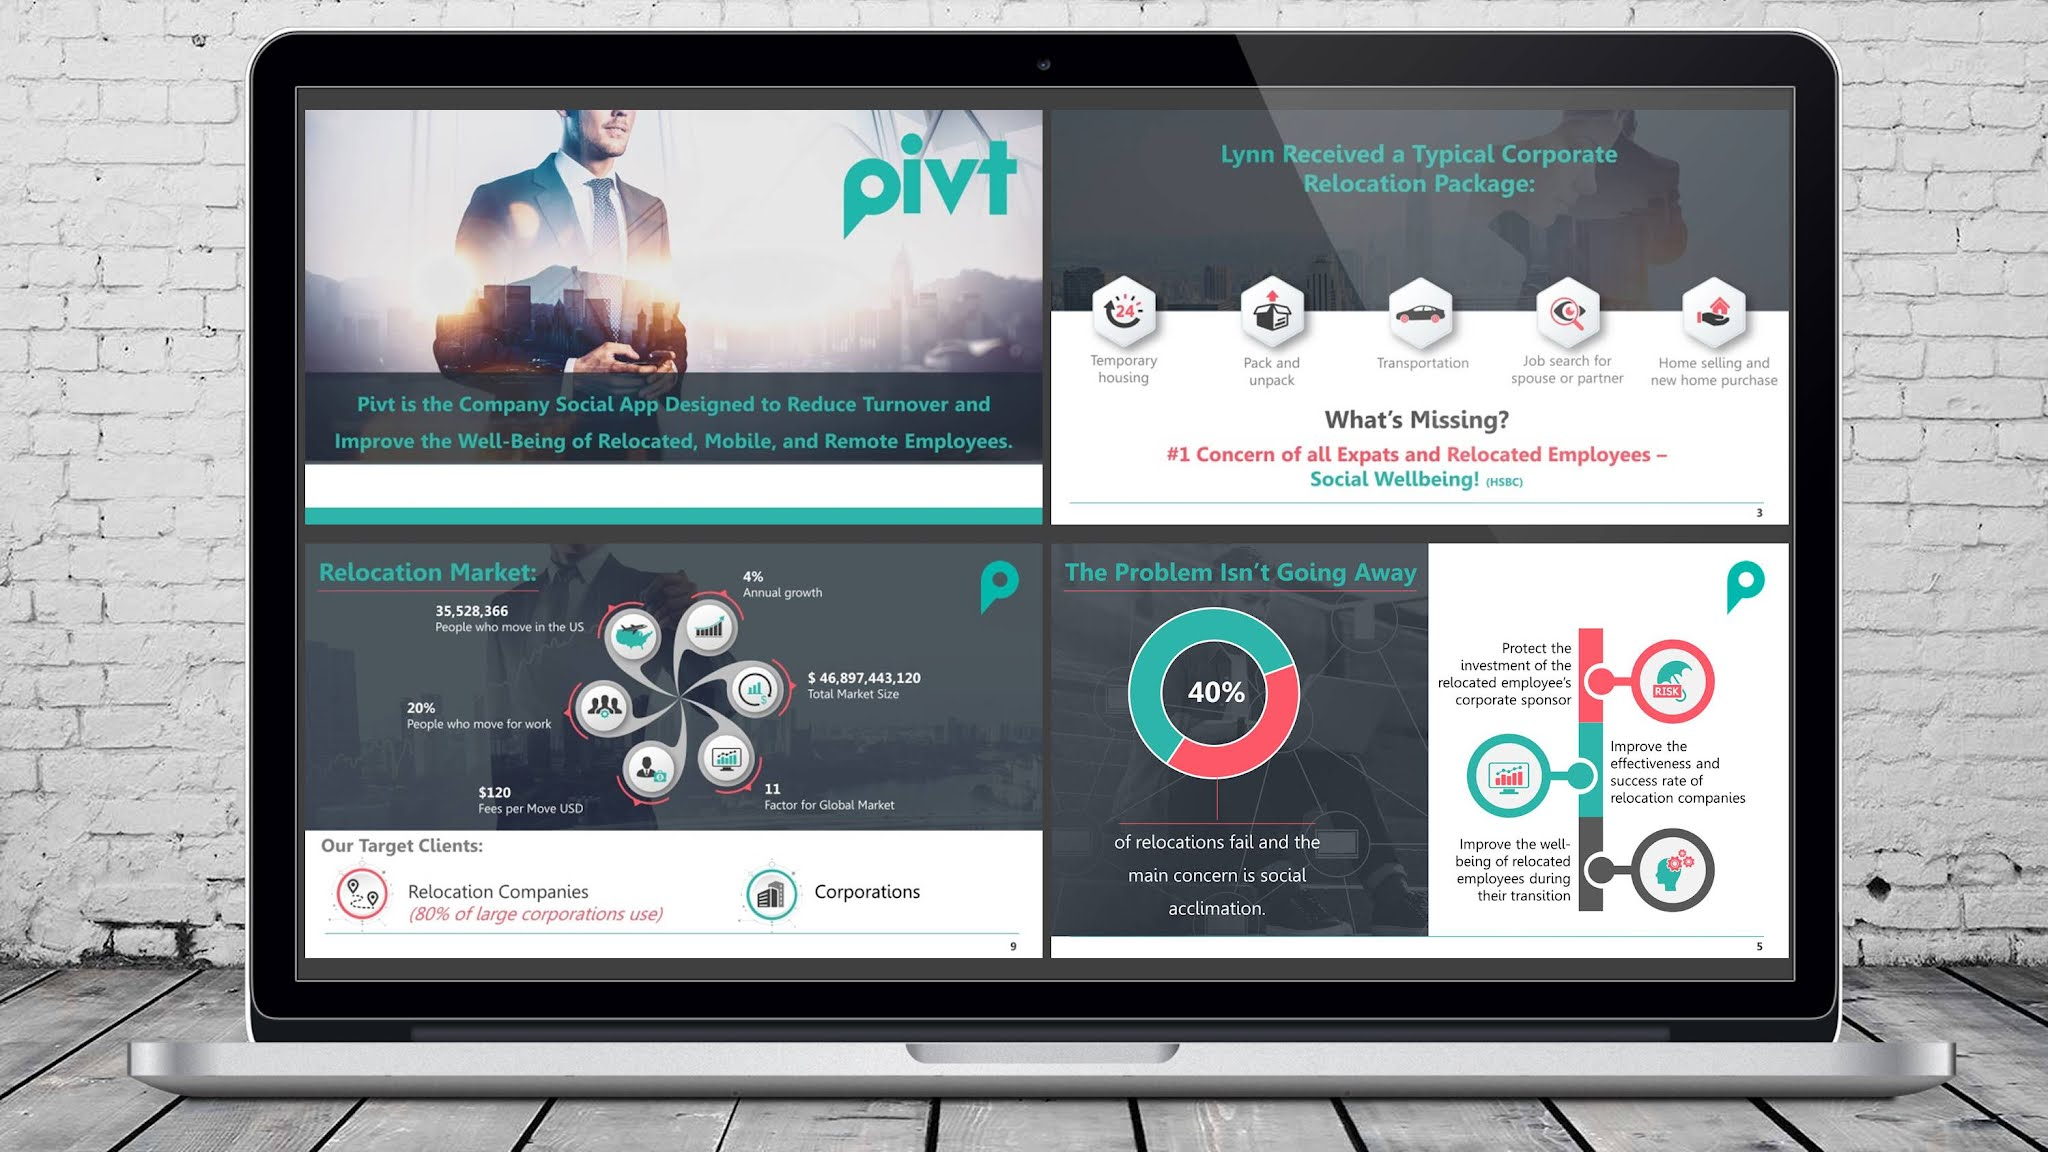 PowerPoint investor pitch deck for mobile application designed to reduce churn and improve the well-being of relocated, remote and transient employees